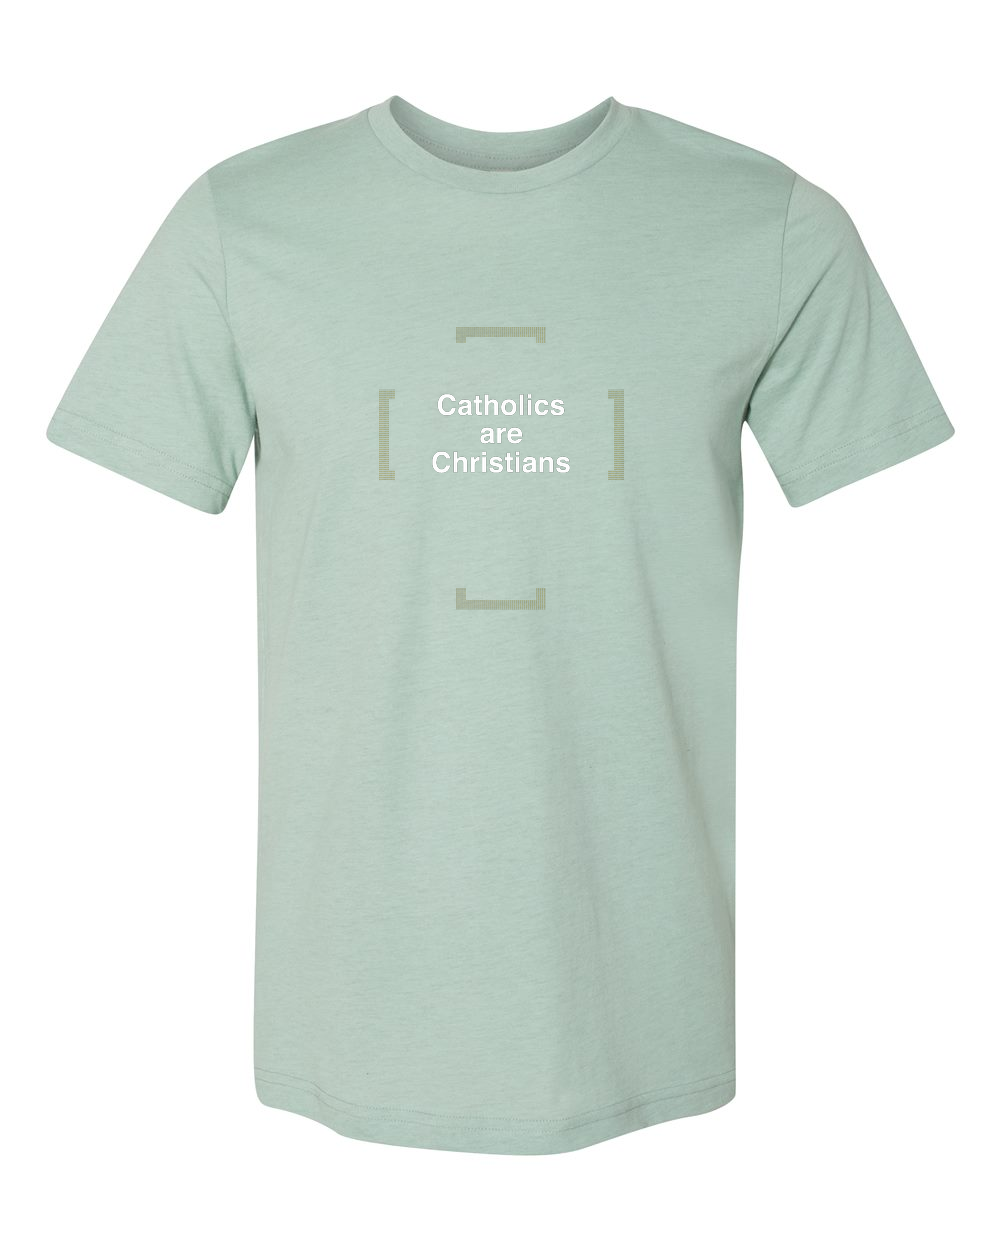 Catholics are Christians – Catholics are Christians T Shirt - That One Sheep